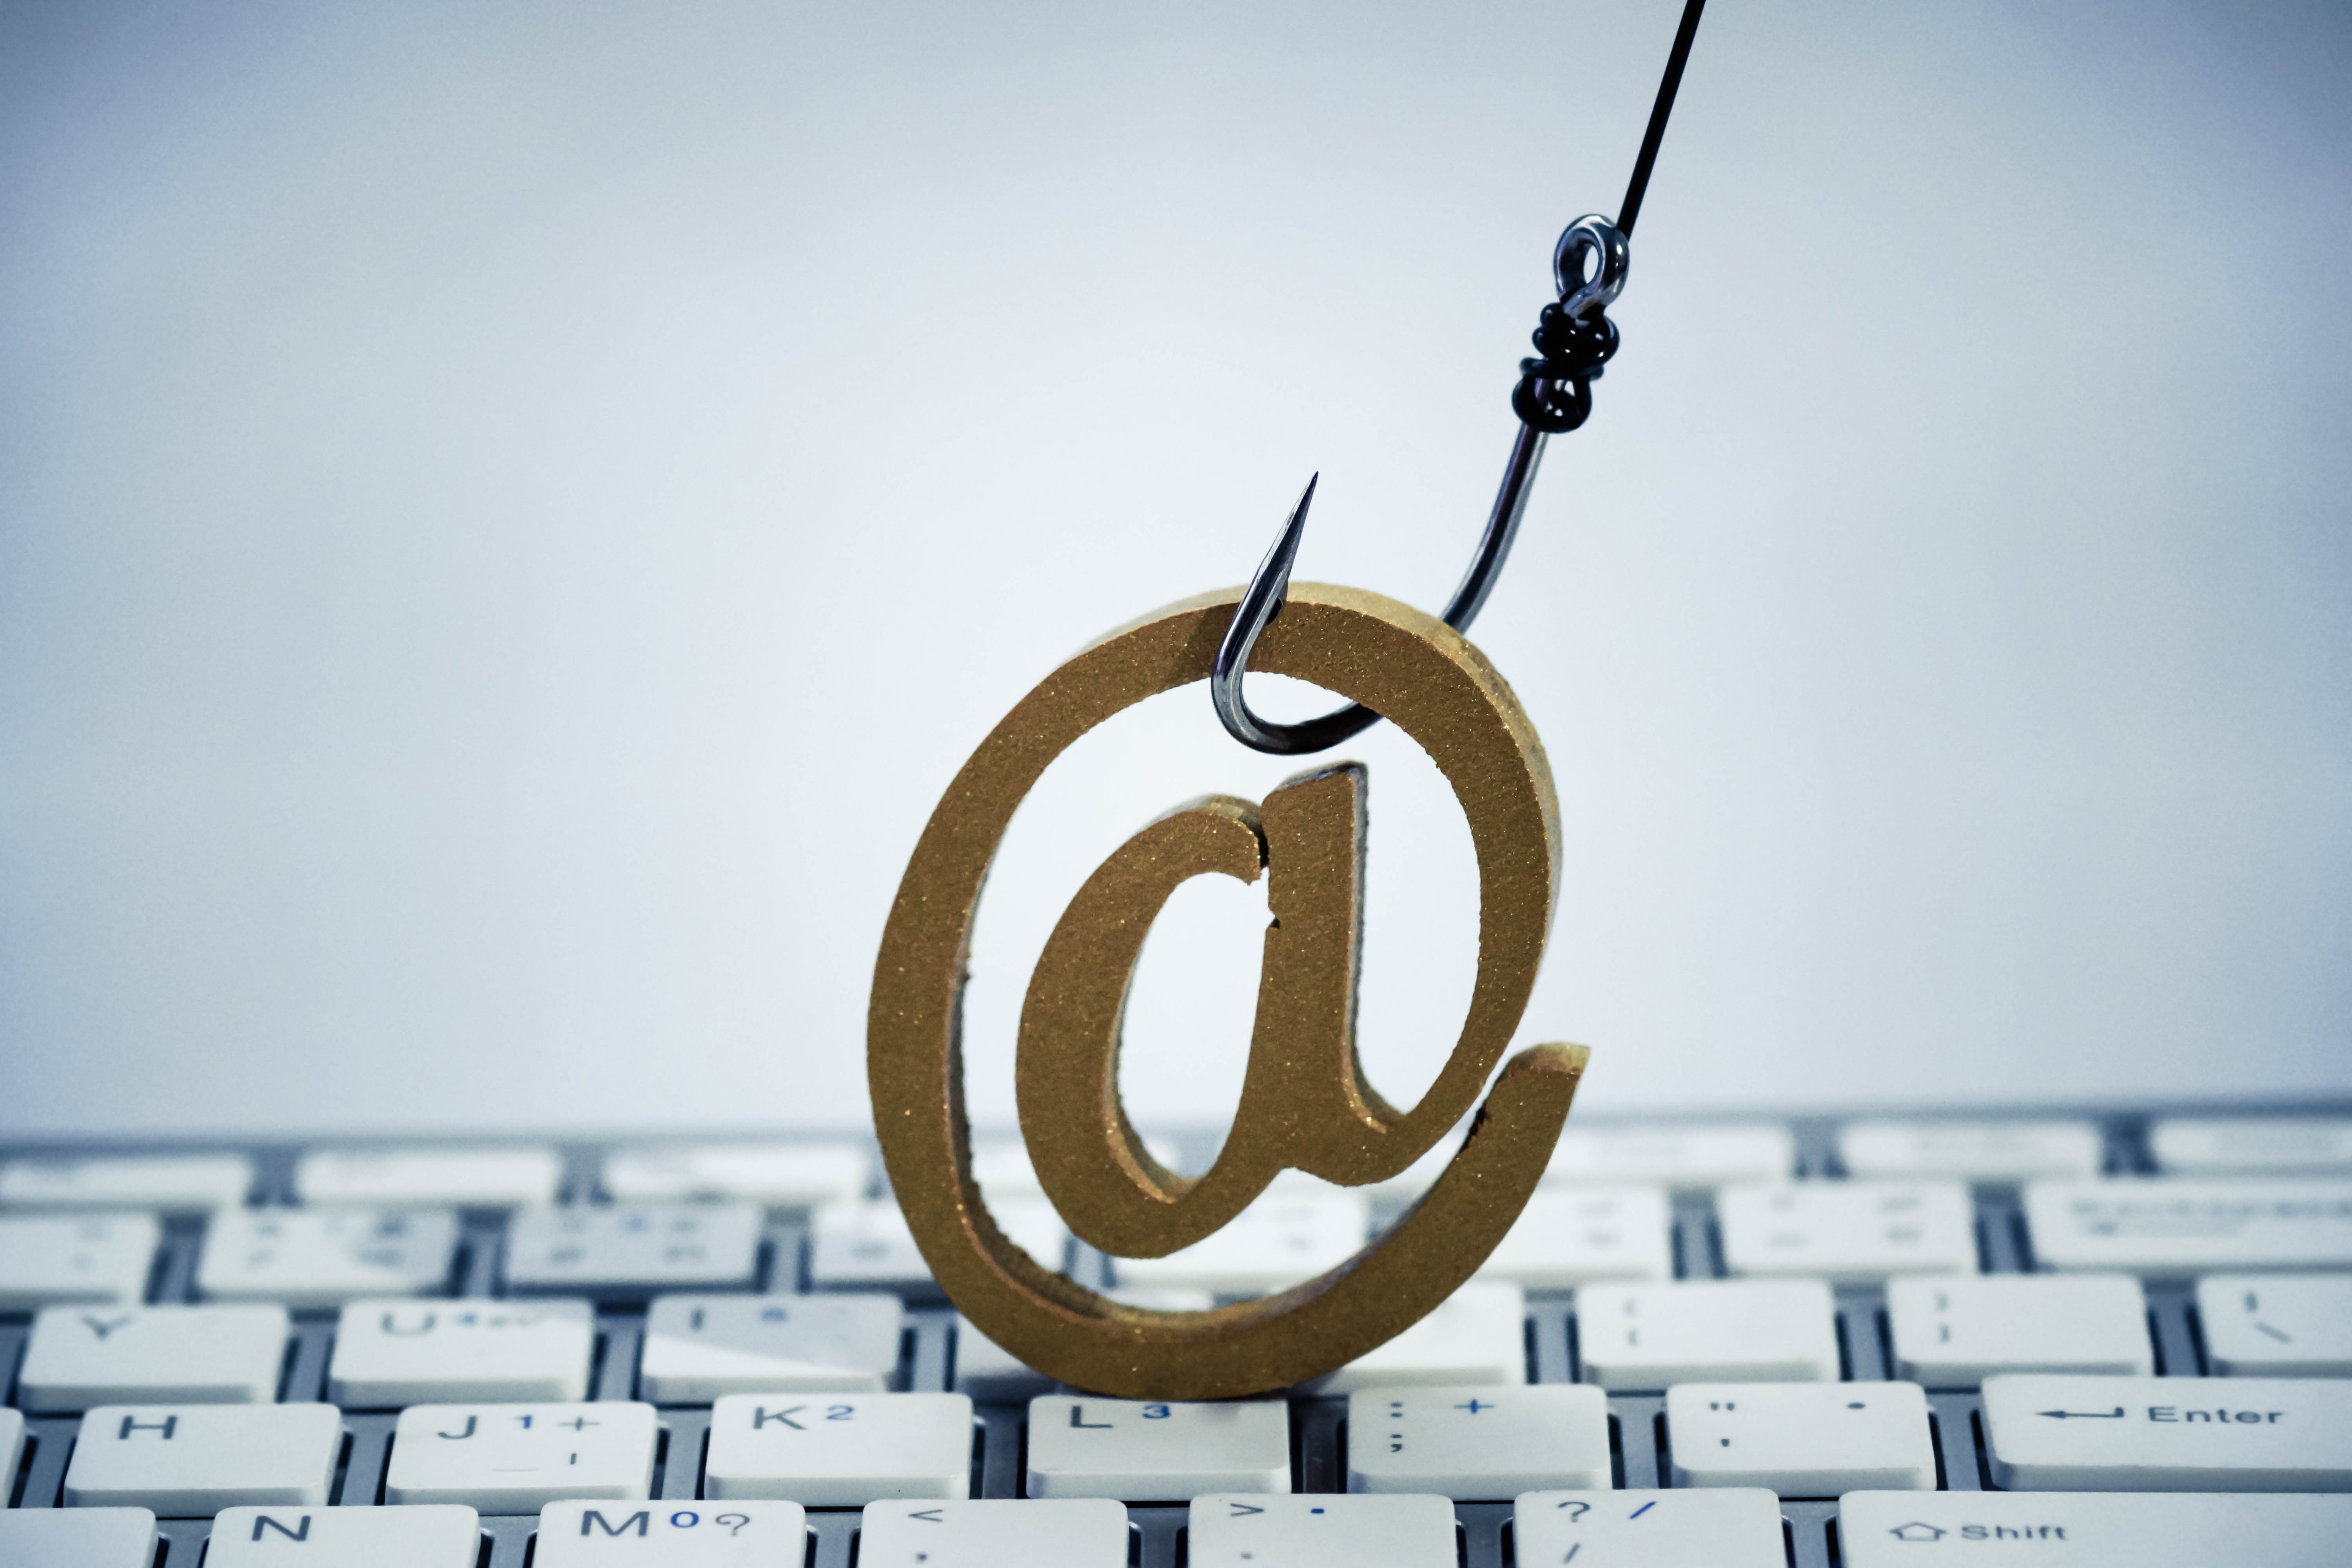 Phishing: It's not misspelled and you're the phish. What can you do to avoid the hook?